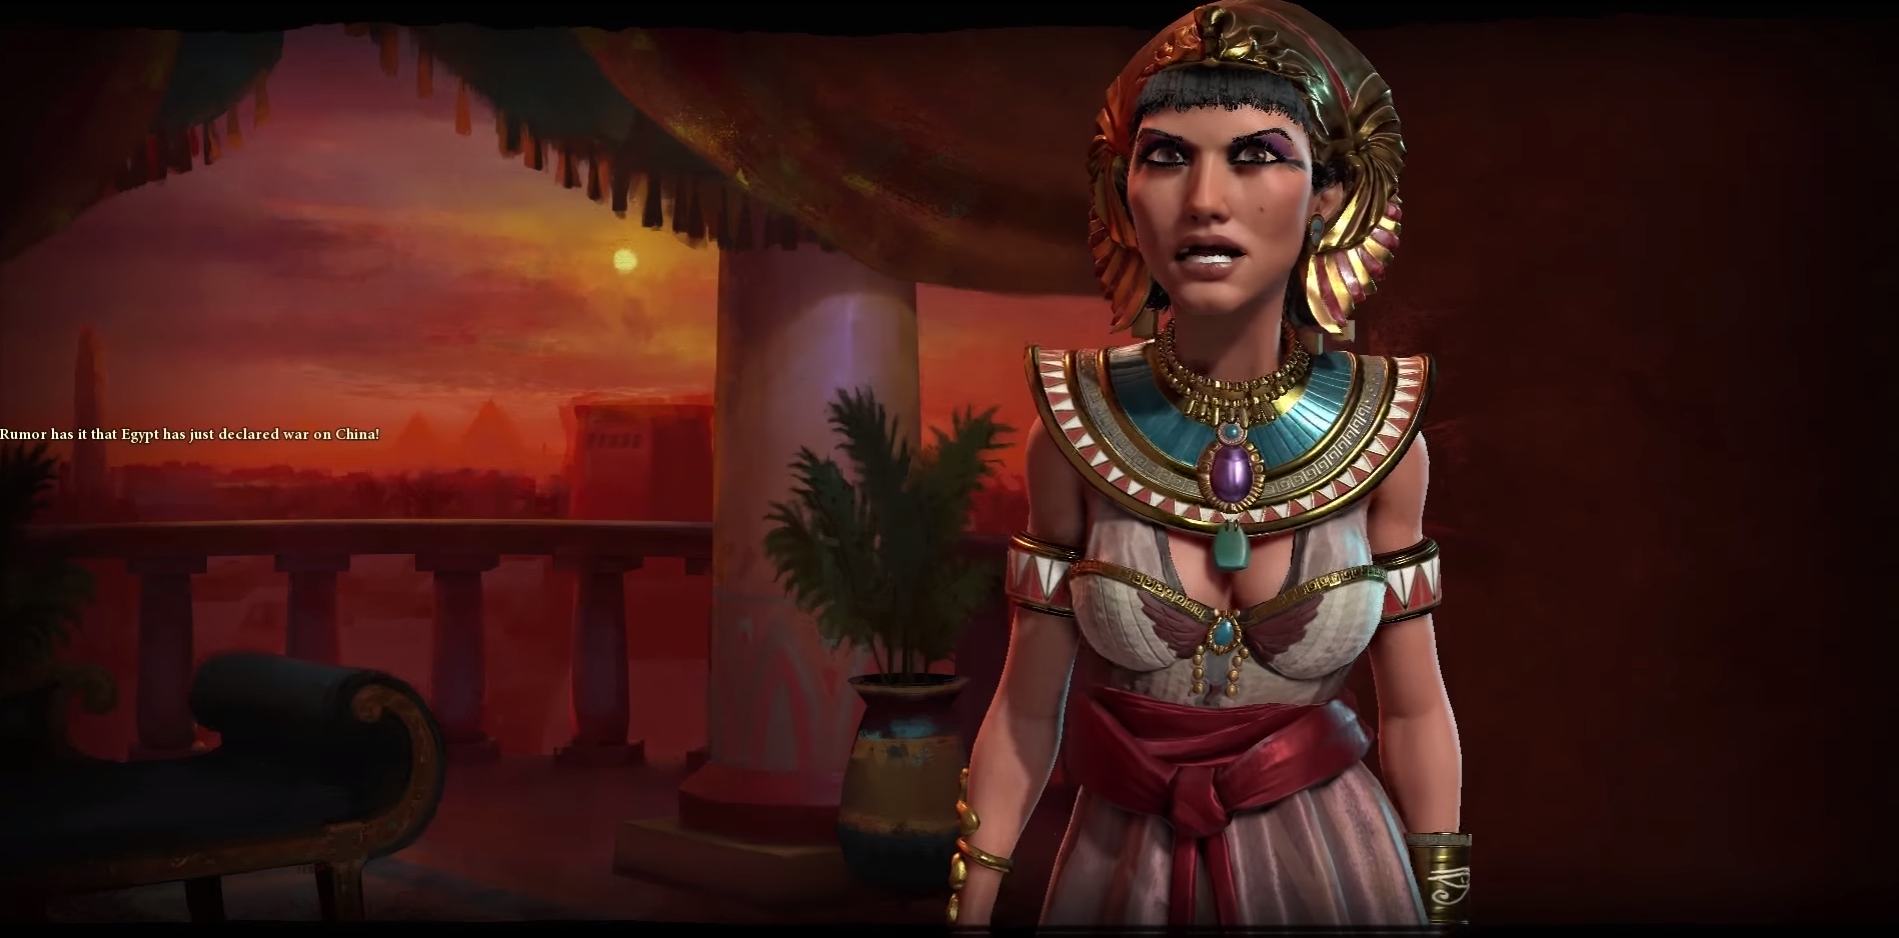 Civ 6 Leaders Have Historical and Hidden Agendas